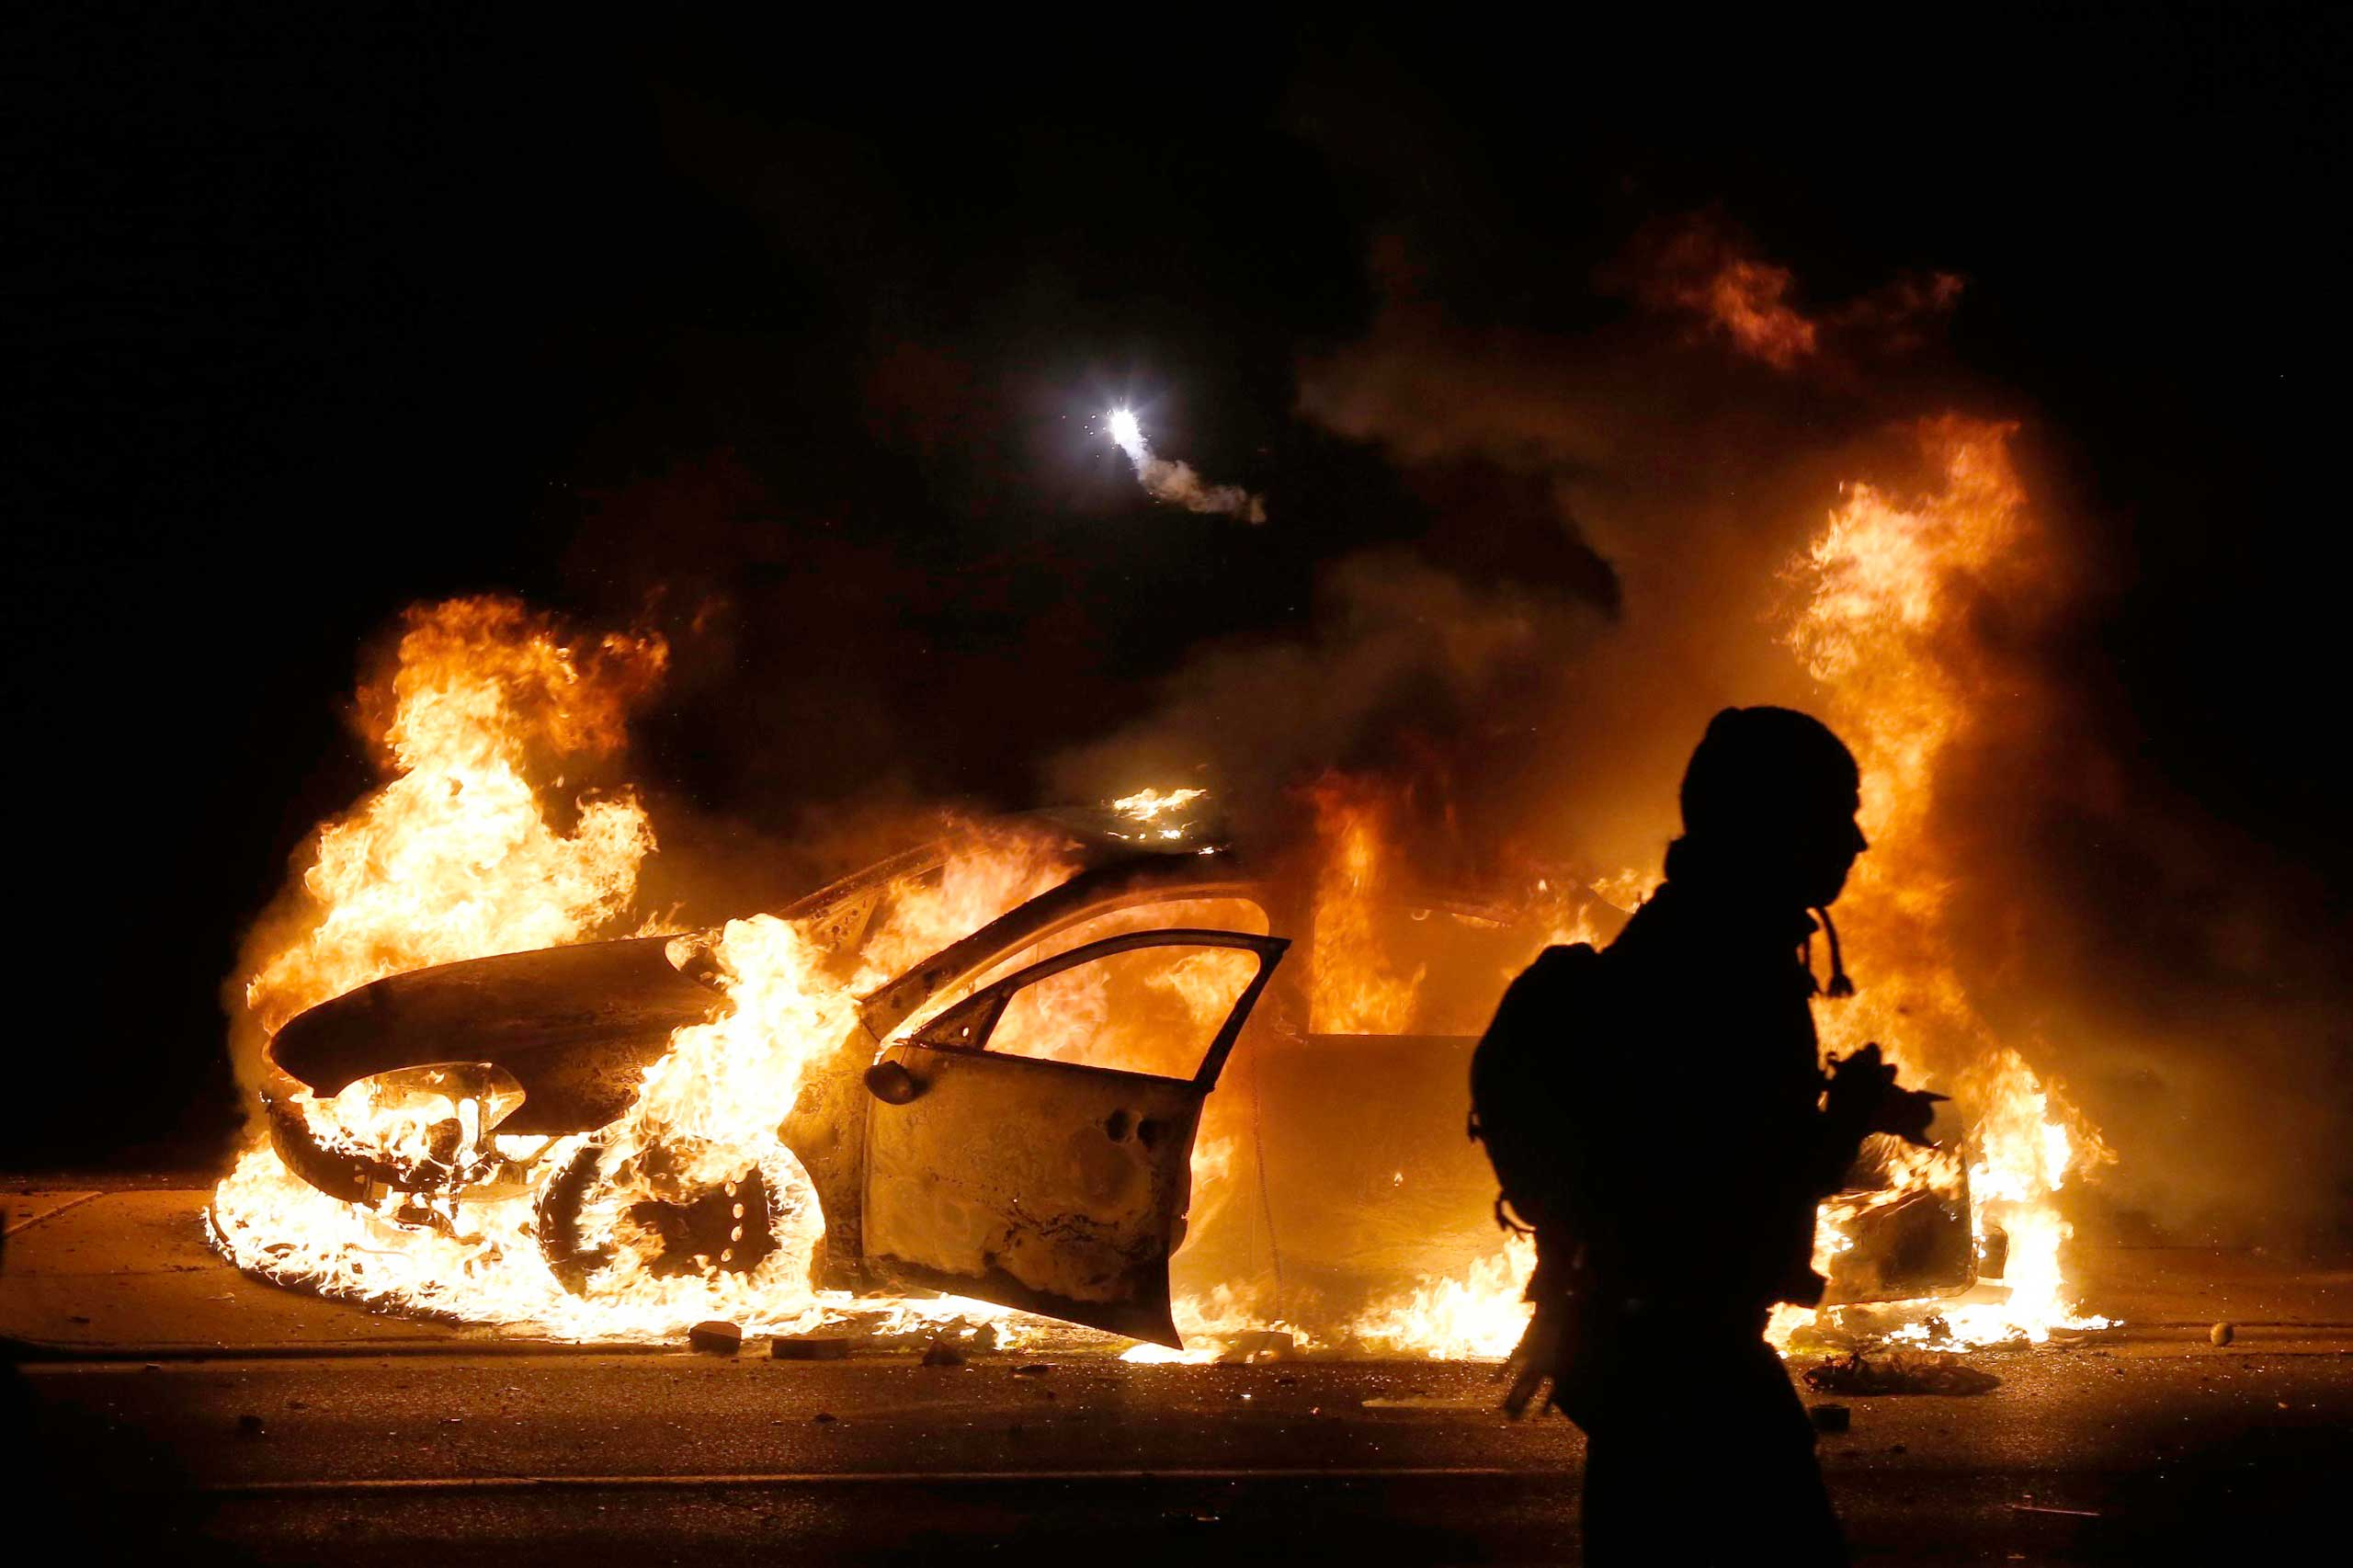 After the announcement that the grand jury brought no charges against Darren Wilson, police officers and protesters faced off on a tense night in which cars and buildings were burned by protesters and tear gas thrown by police, in Ferguson, Mo. on Nov. 24, 2014.